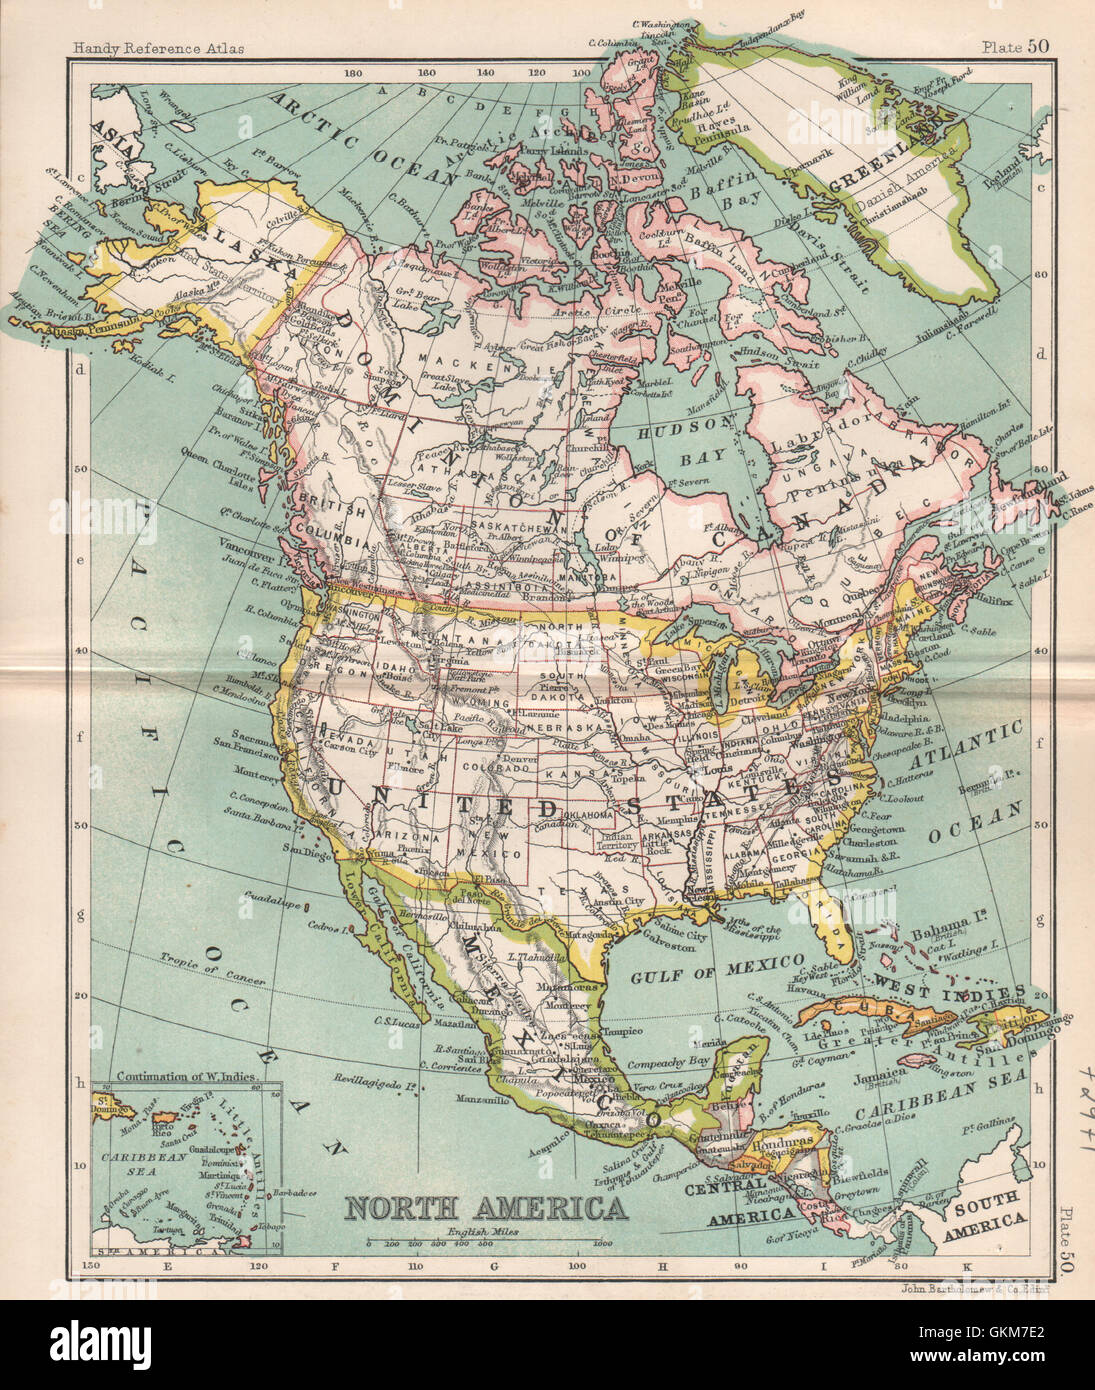 Canada And United States Map.United States Of America And Canada Map Stock Photos United States